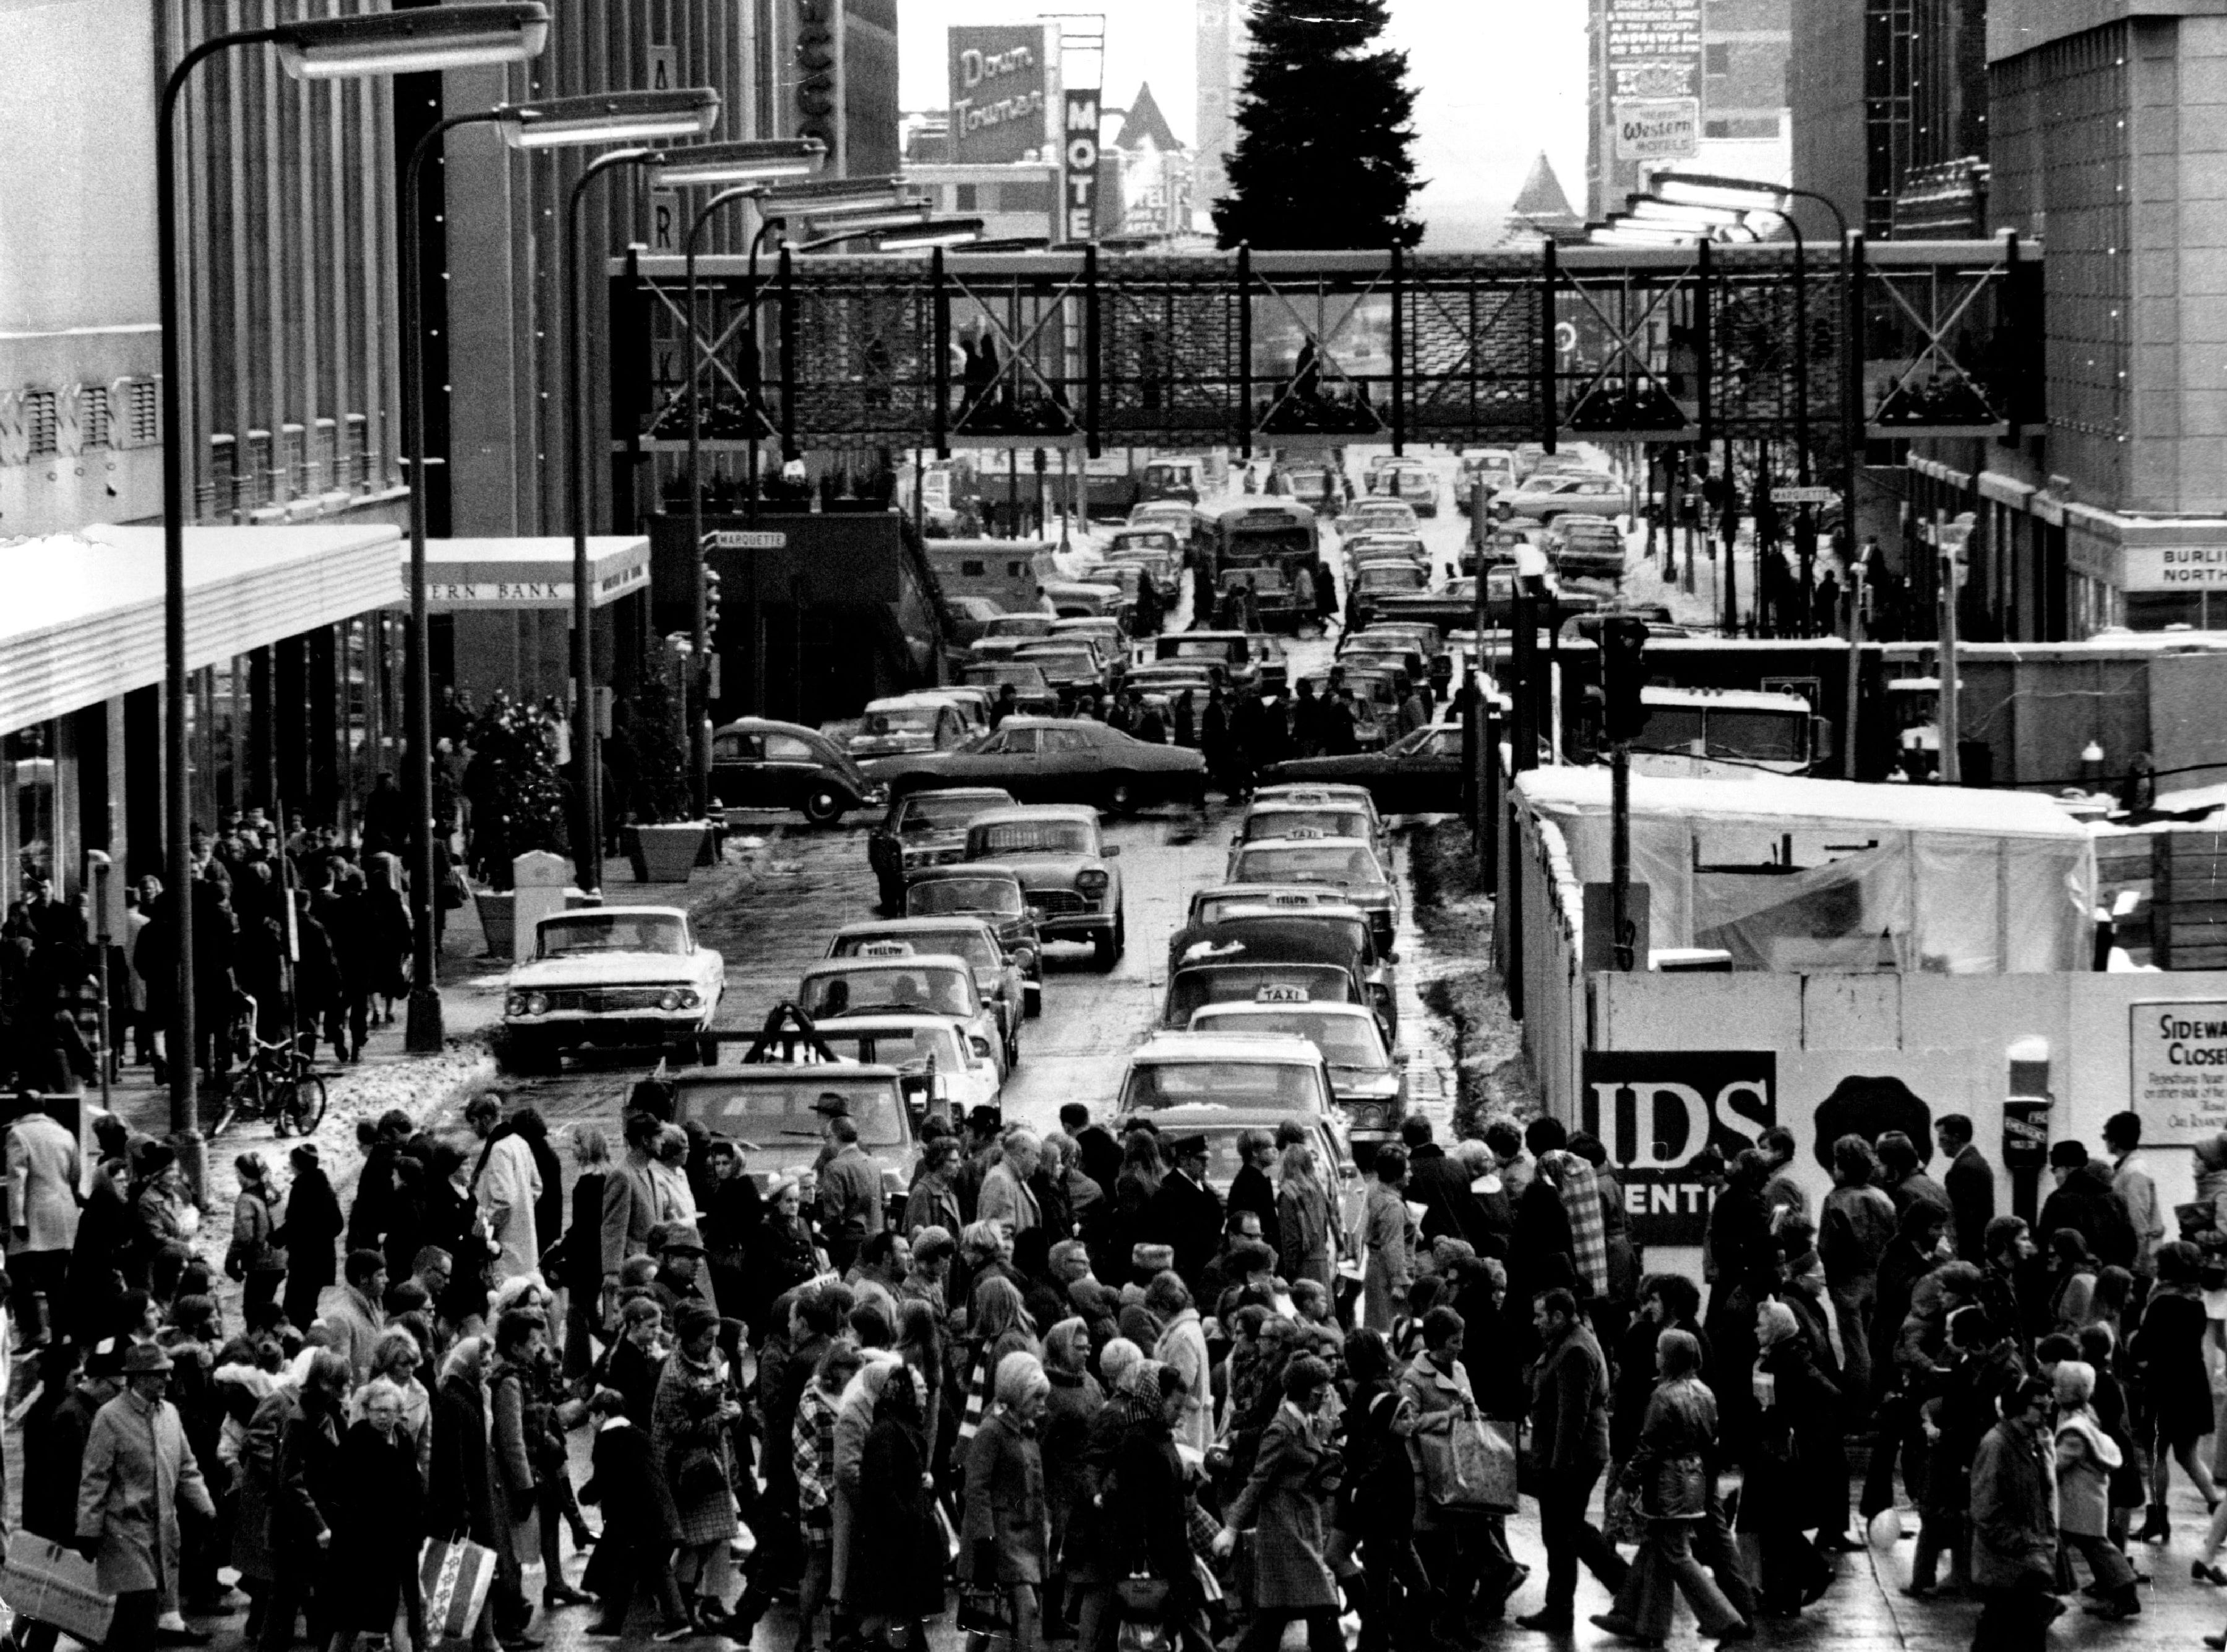 Nov. 28, 1970: Shoppers on foot and in cars crowded downtown Minneapolis the day after Thanksgiving for the traditional start of the Christmas shopping season.